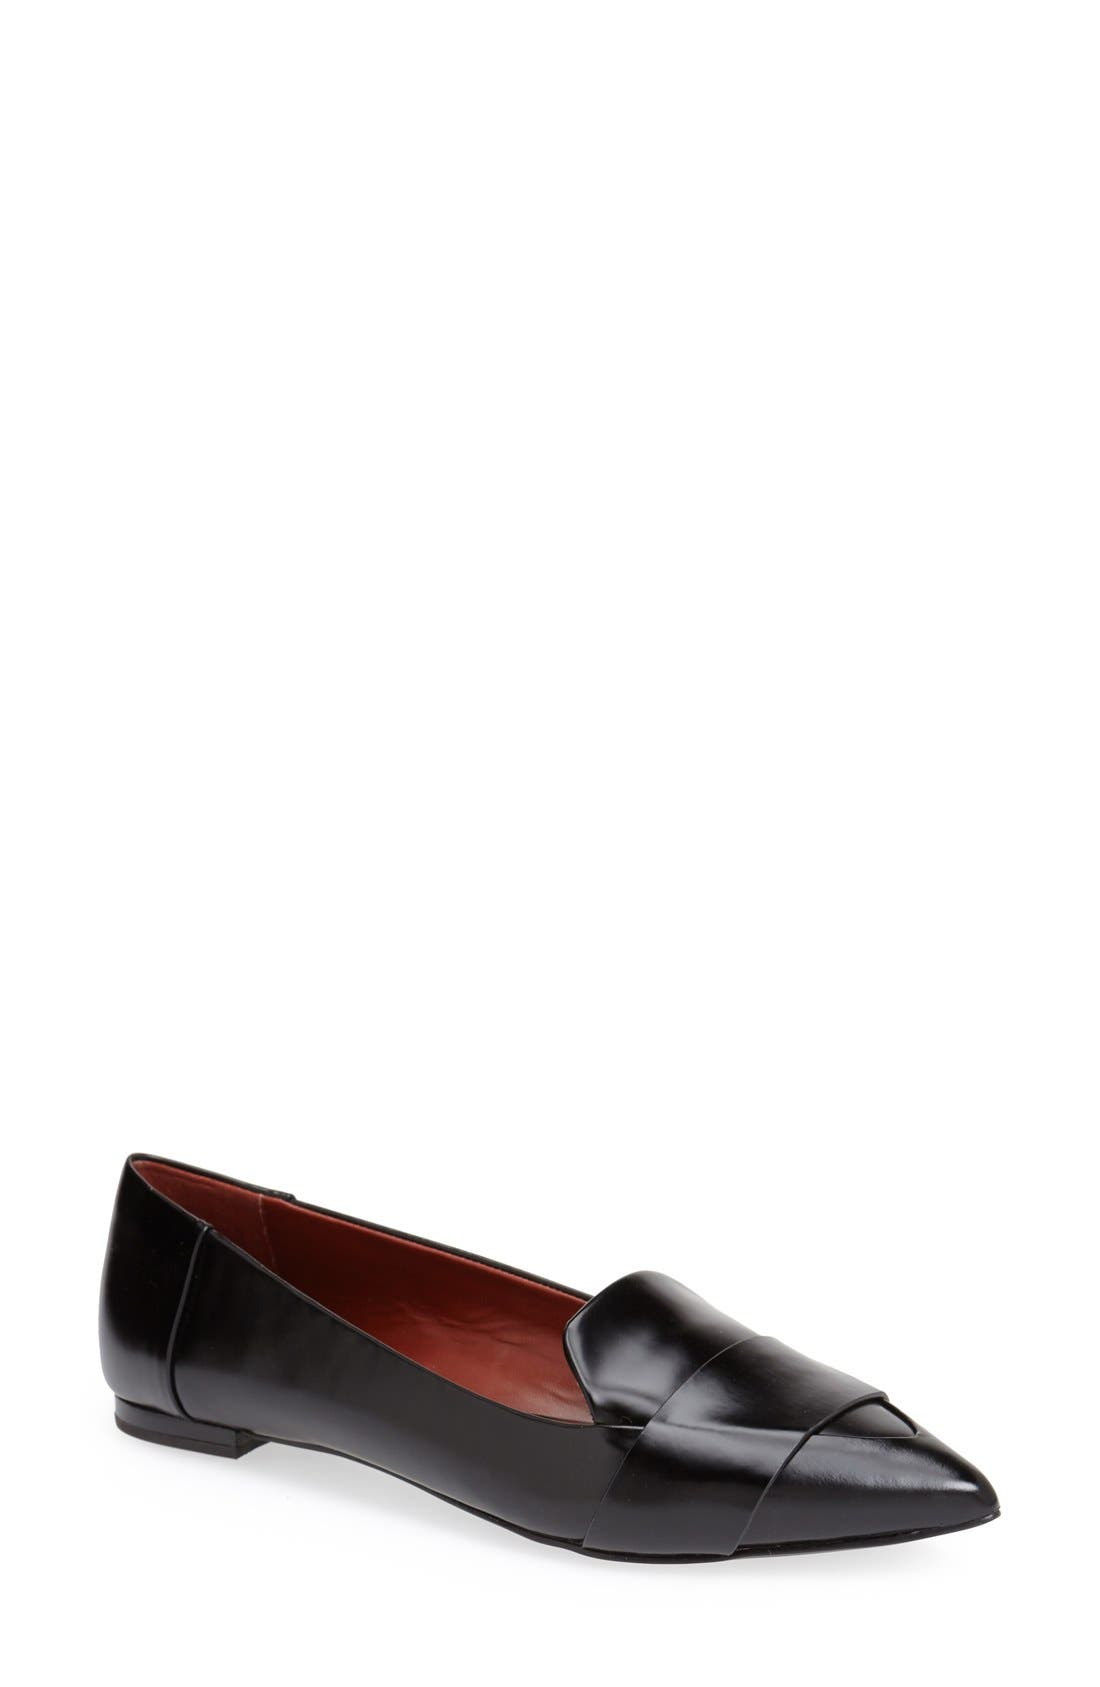 Alternate Image 1 Selected - Aerin 'Iona' Pointy Toe Flat (Women)